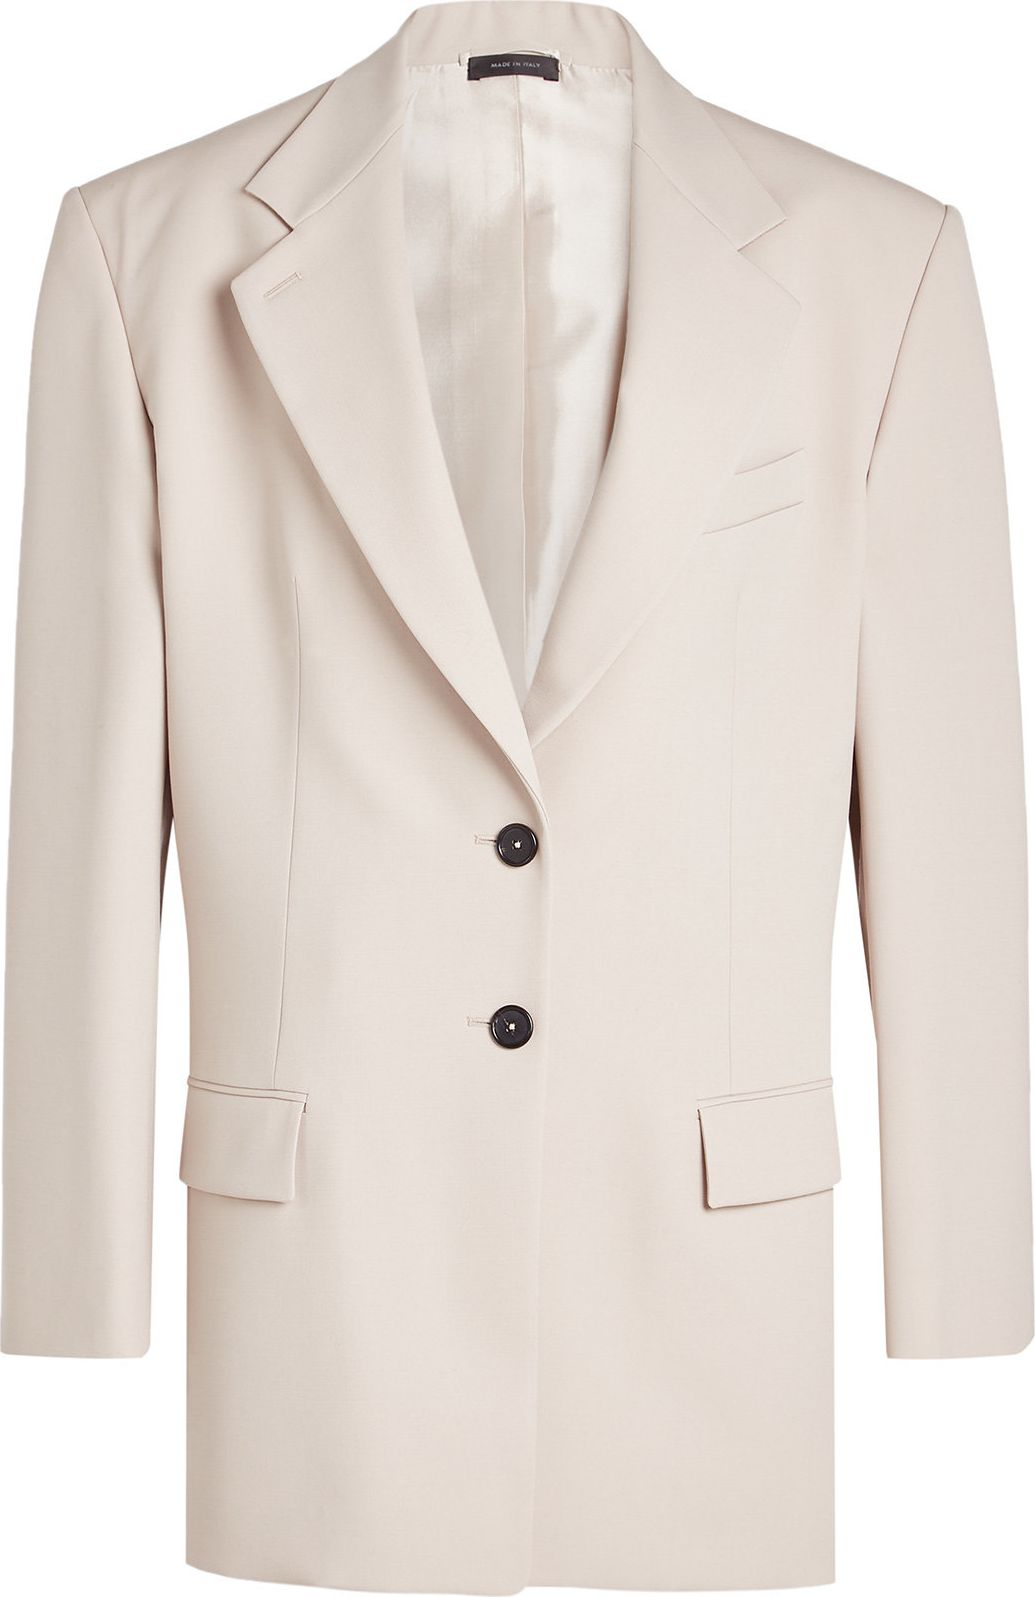 Jil Sander - Fleece Wool Blazer